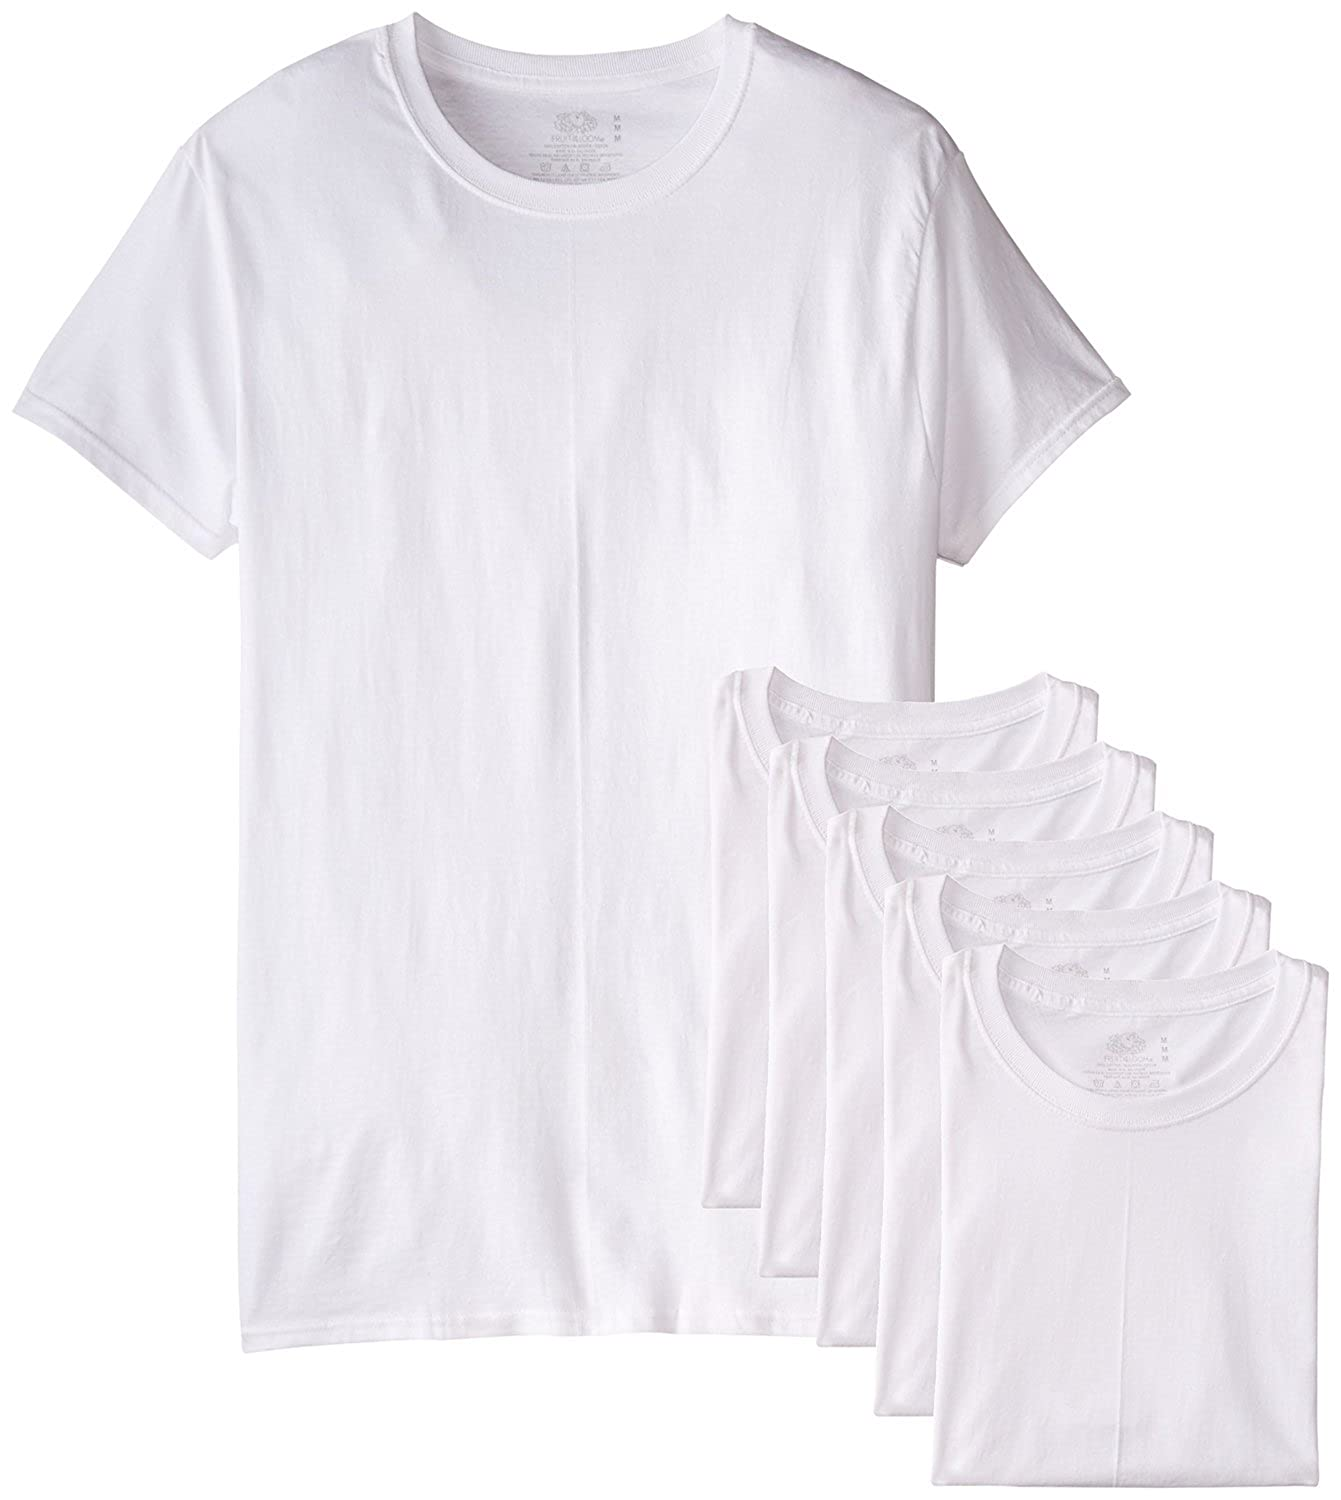 6af251337 Fruit of the Loom Men's Stay Tucked Crew T-Shirt at Amazon Men's Clothing  store: